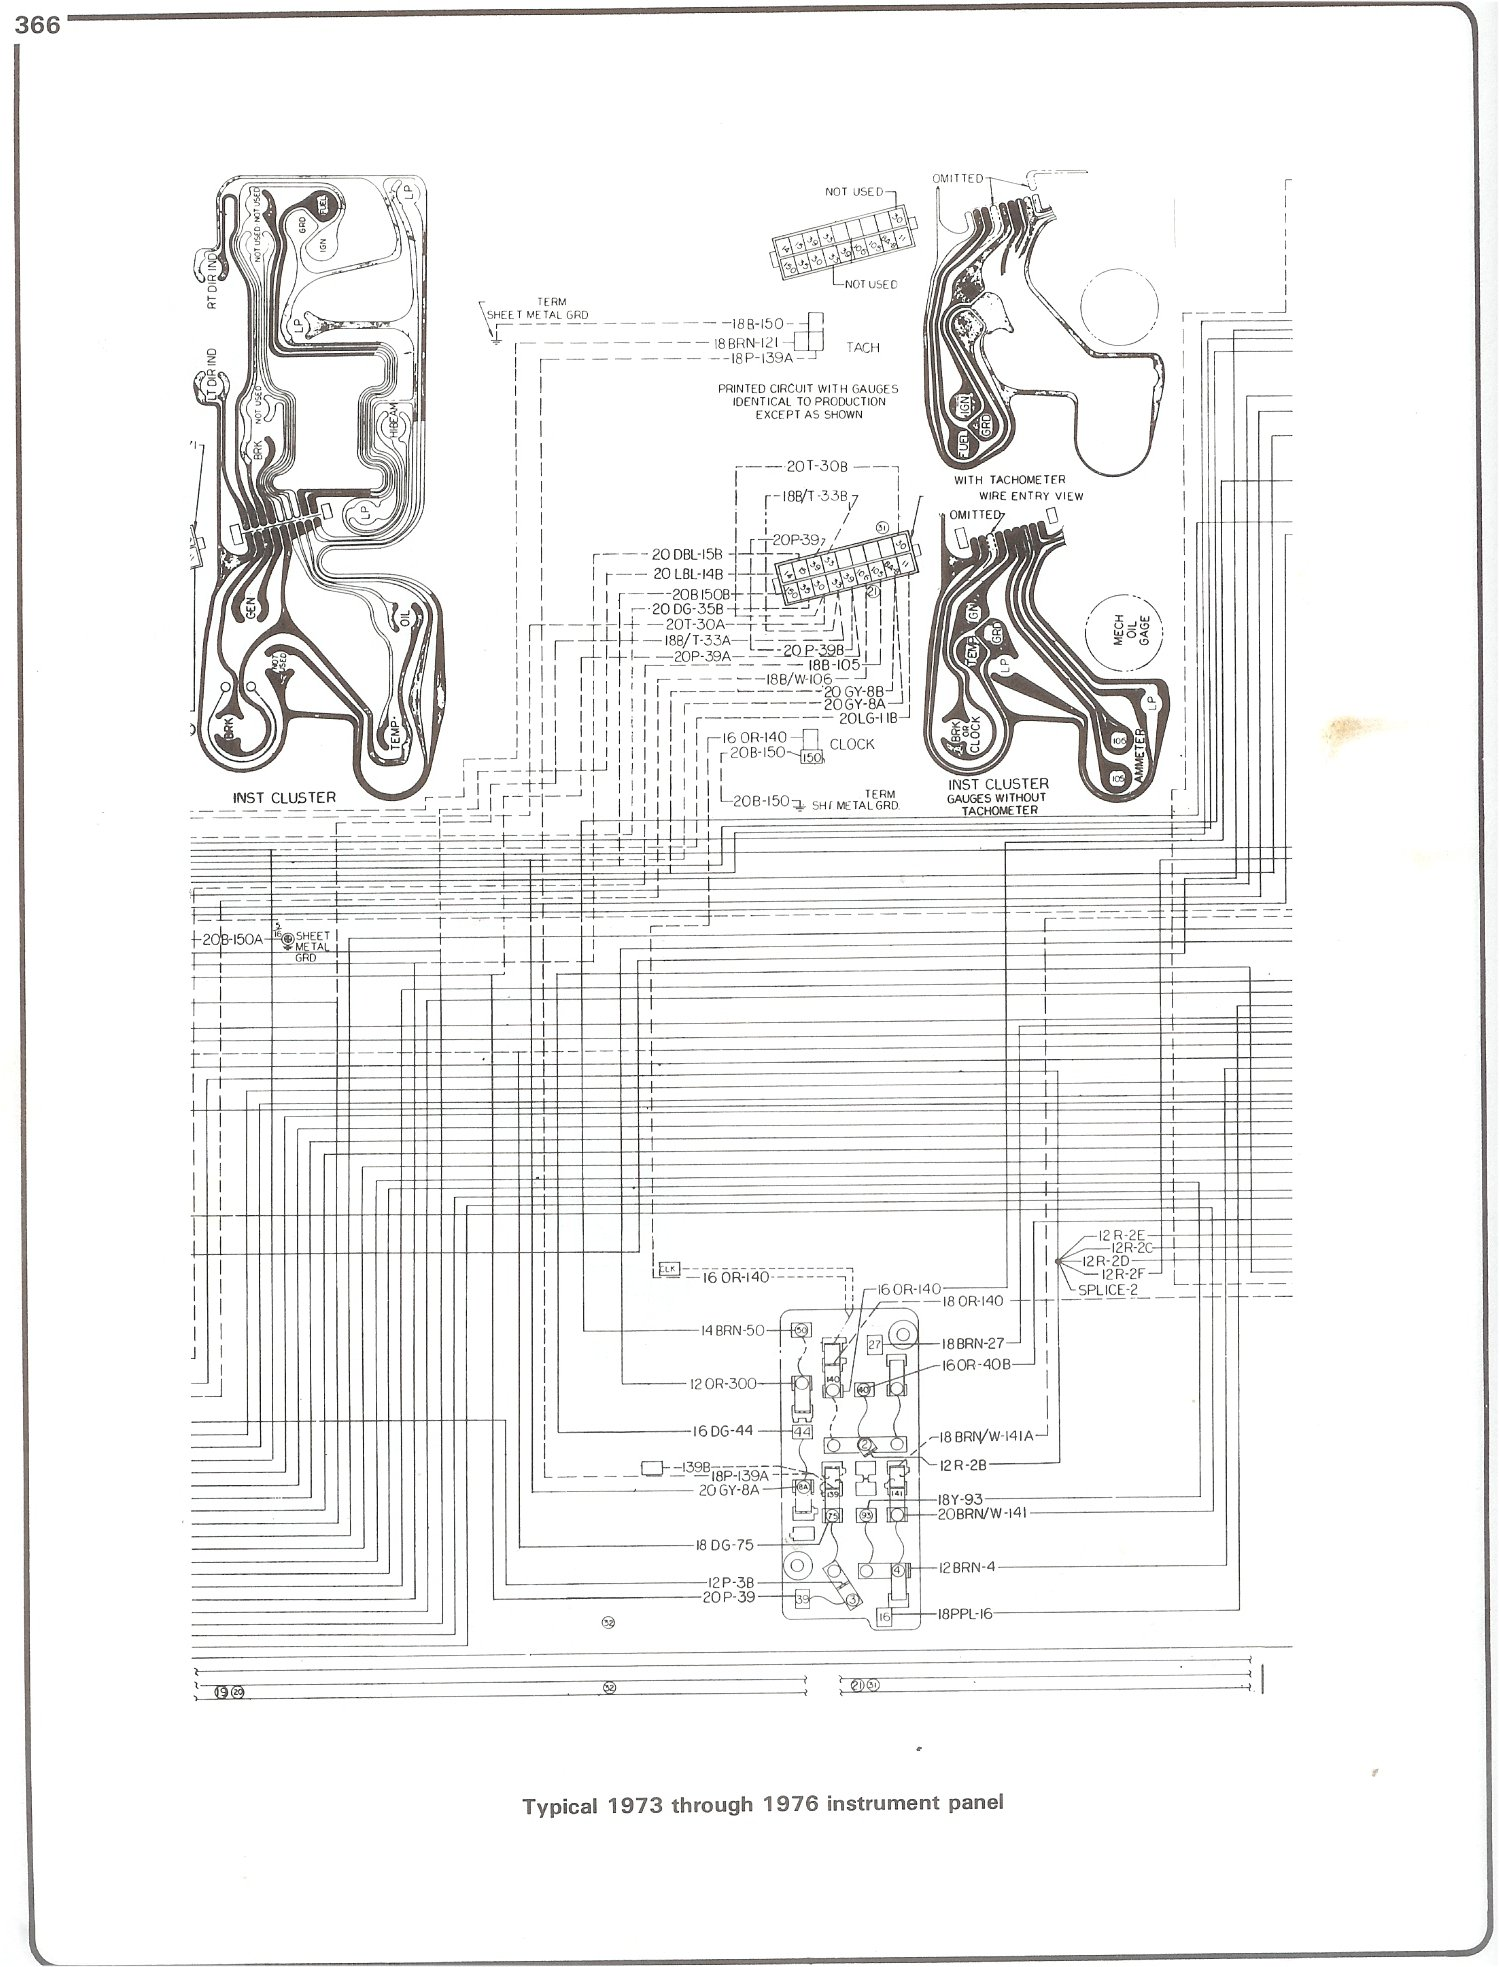 1986 chevy truck wiring diagram model c